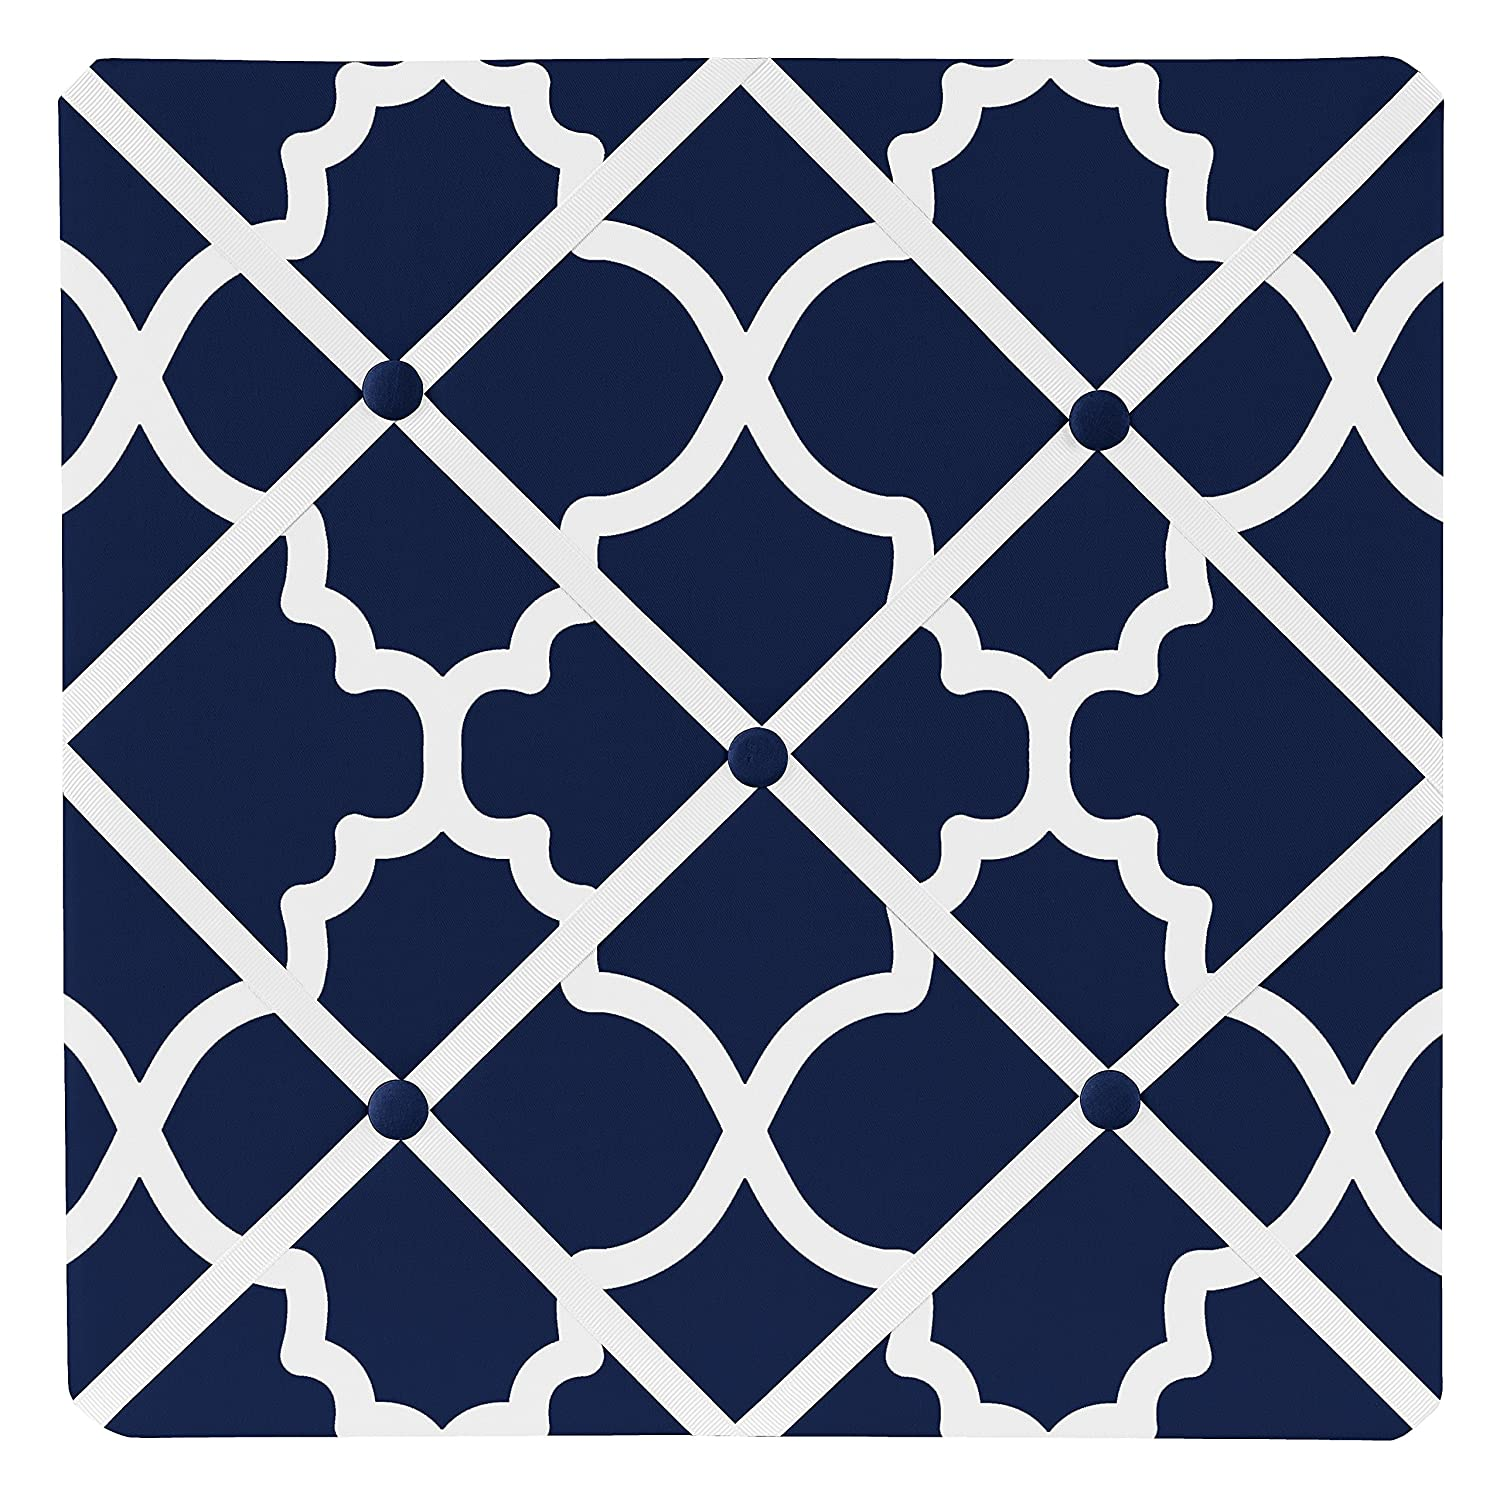 Navy Blue and White Modern Fabric Memory Memo Photo Bulletin Board for Trellis Lattice Collection by Sweet JoJo Designs